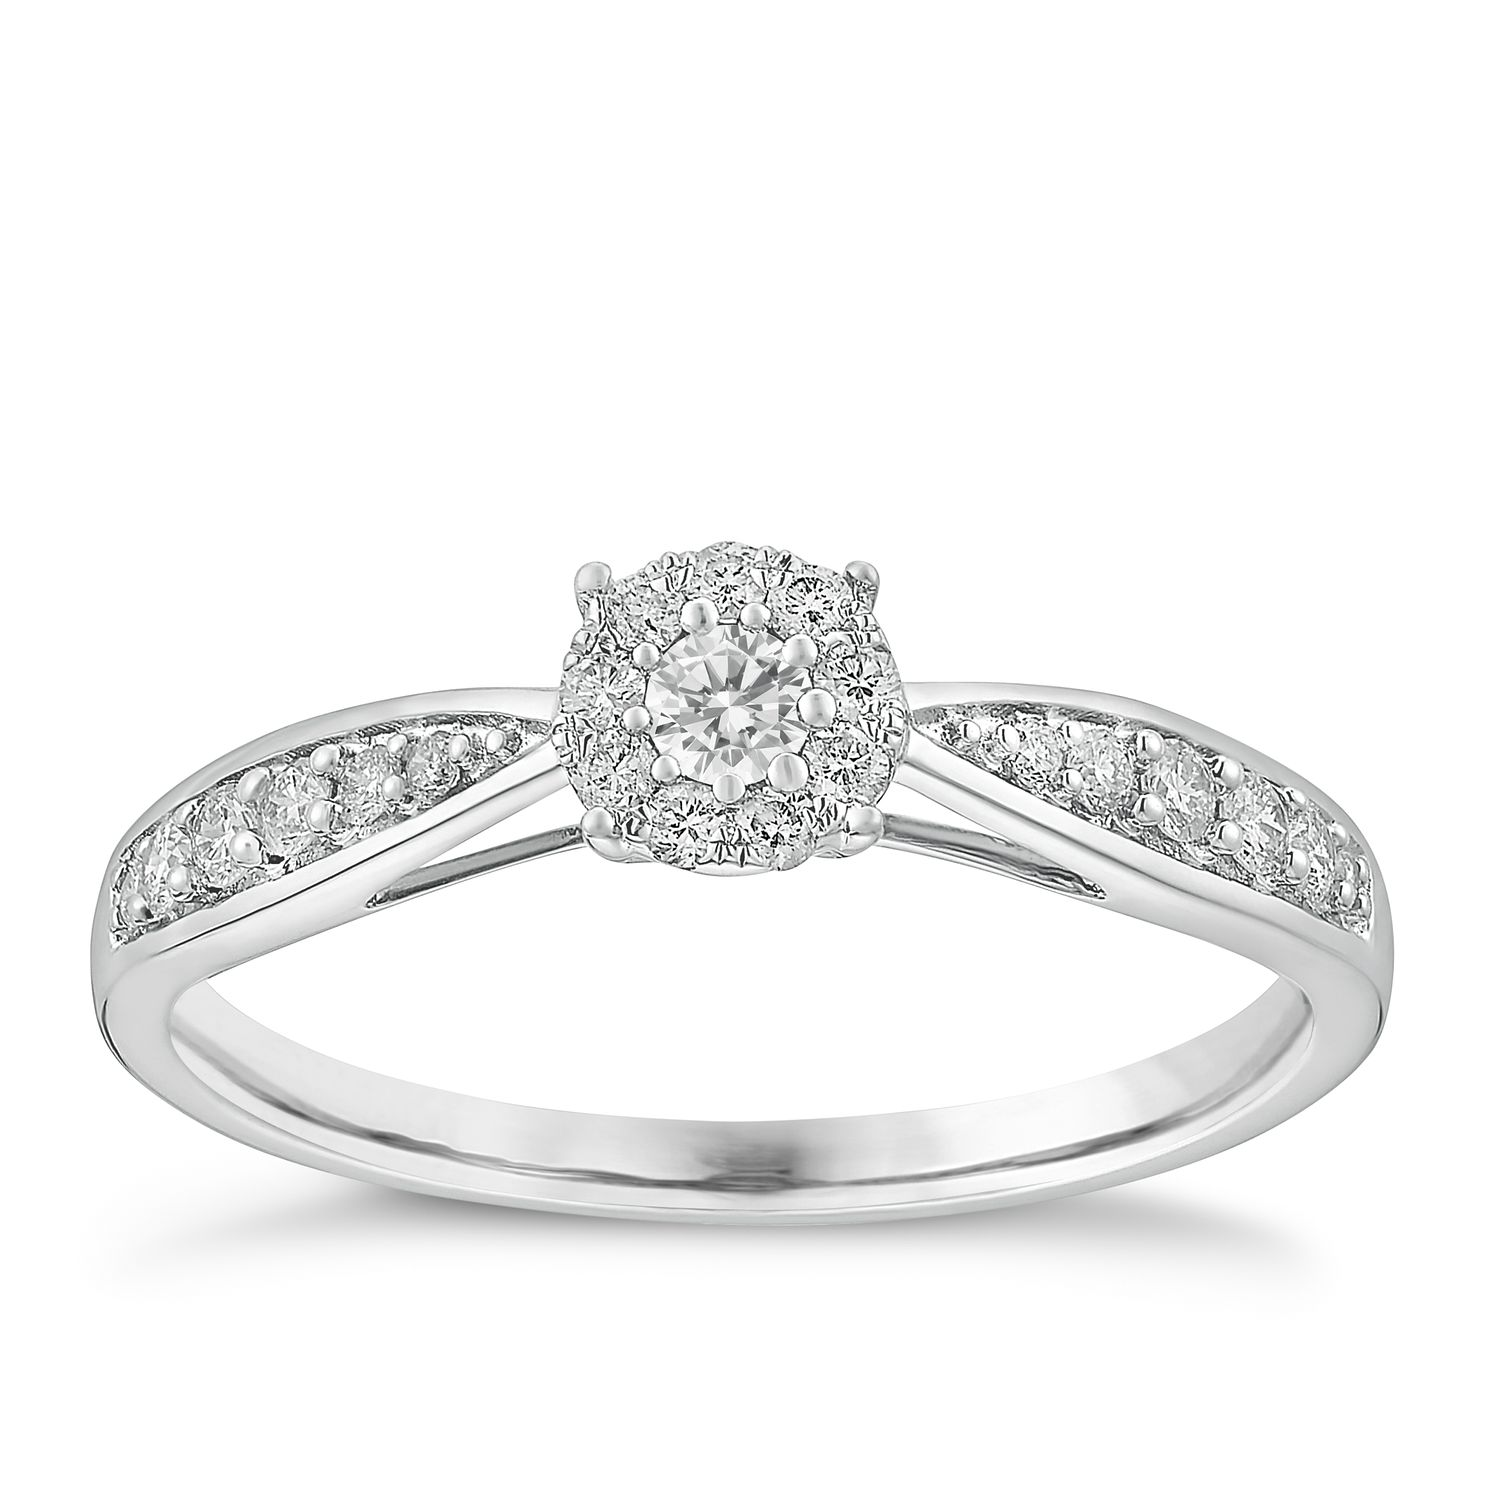 tw hei ring simply rings set vera carat jsp sharpen t product engagement prd w op gold halo diamond wang wid